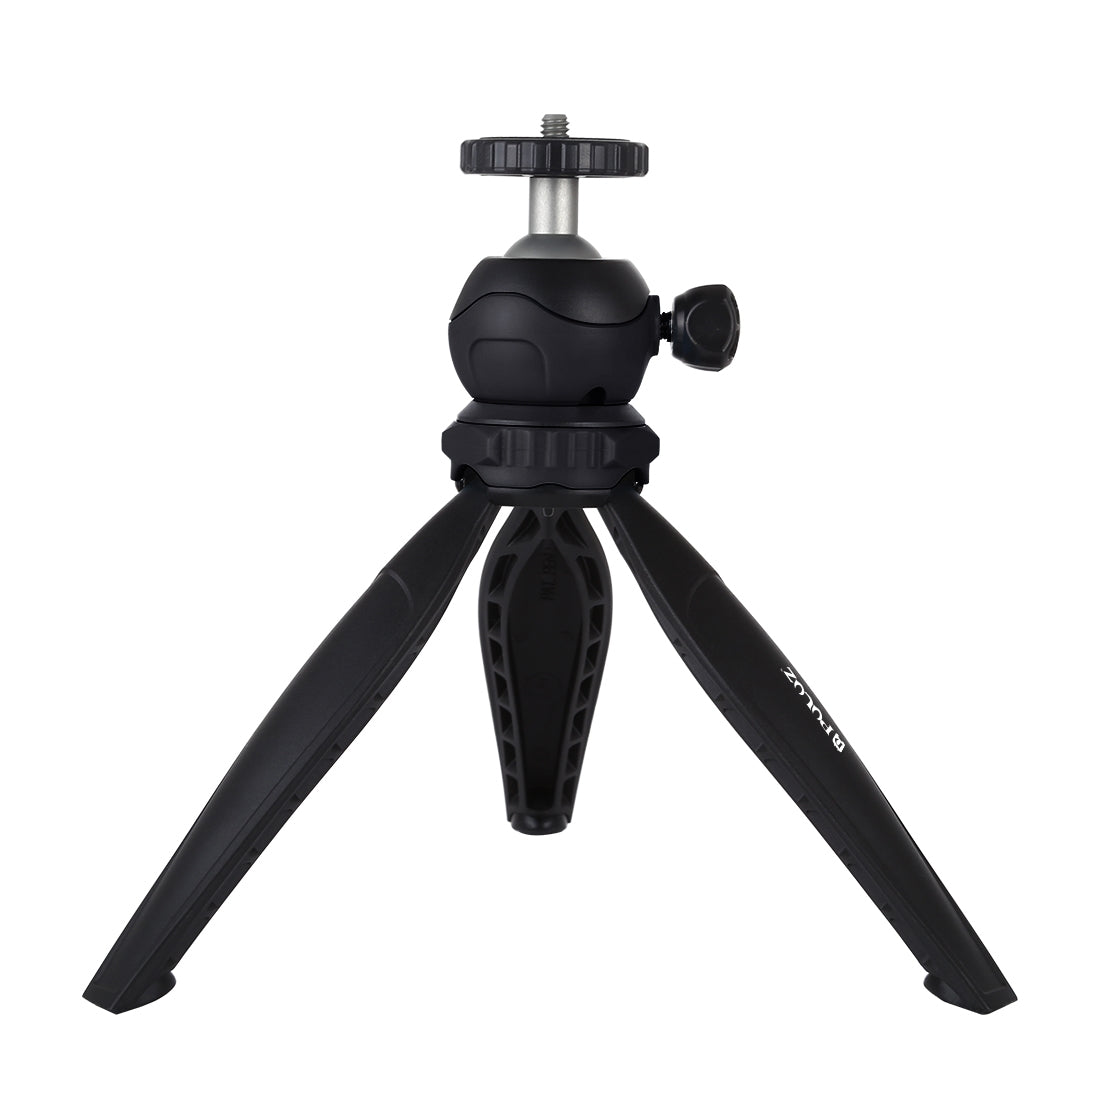 20cm Pocket Plastic Tripod Mount with 360 Degree Ball Head for Smartphones, GoPro, DSLR Cameras(Black)